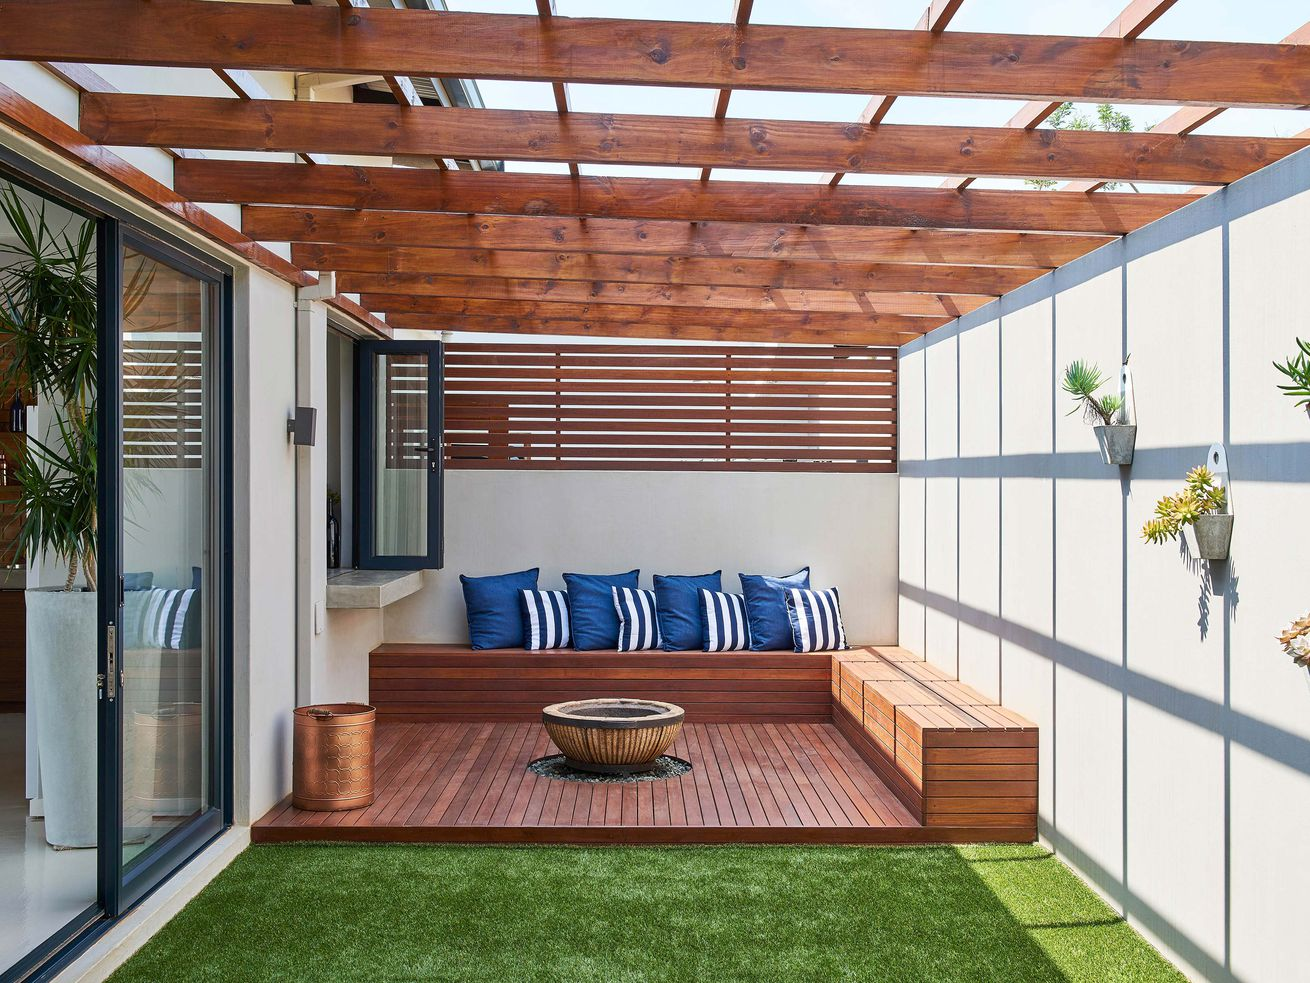 A wooden pergola attached to a house with a fire pit underneath and bench seating.